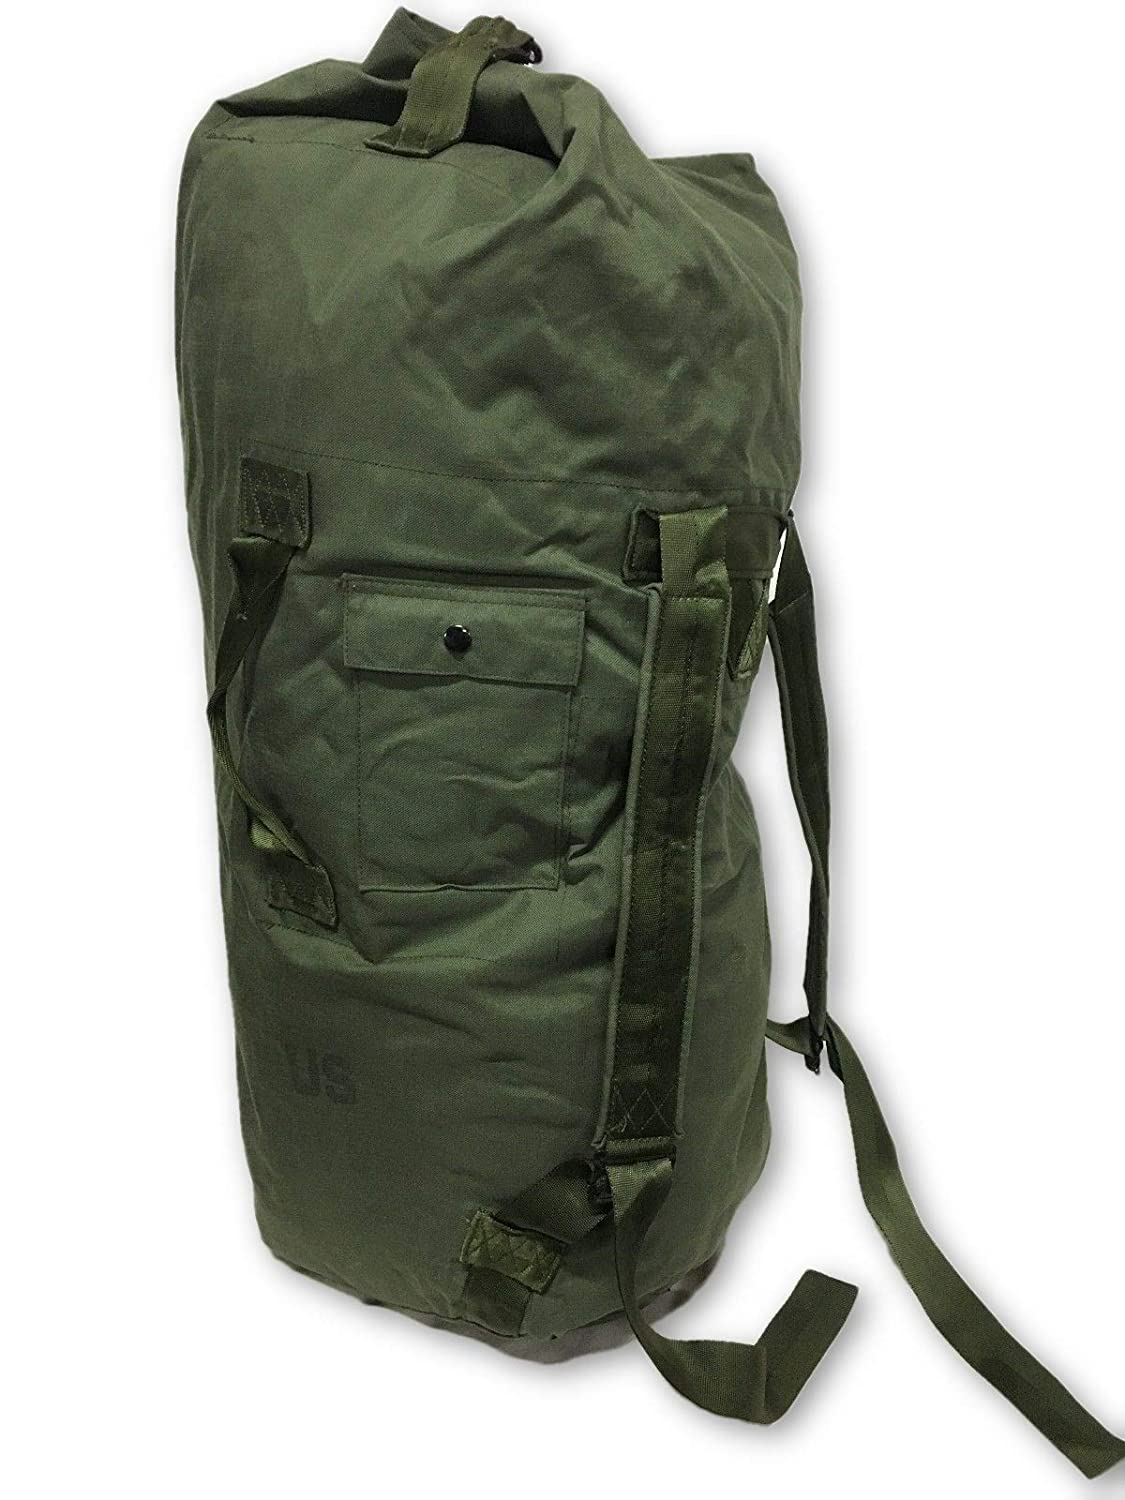 Amazon.com  NEW USA Made Army Military Duffle Bag Sea Bag OD Green Top Load  Shoulder Straps  Sports   Outdoors 5870a160e1